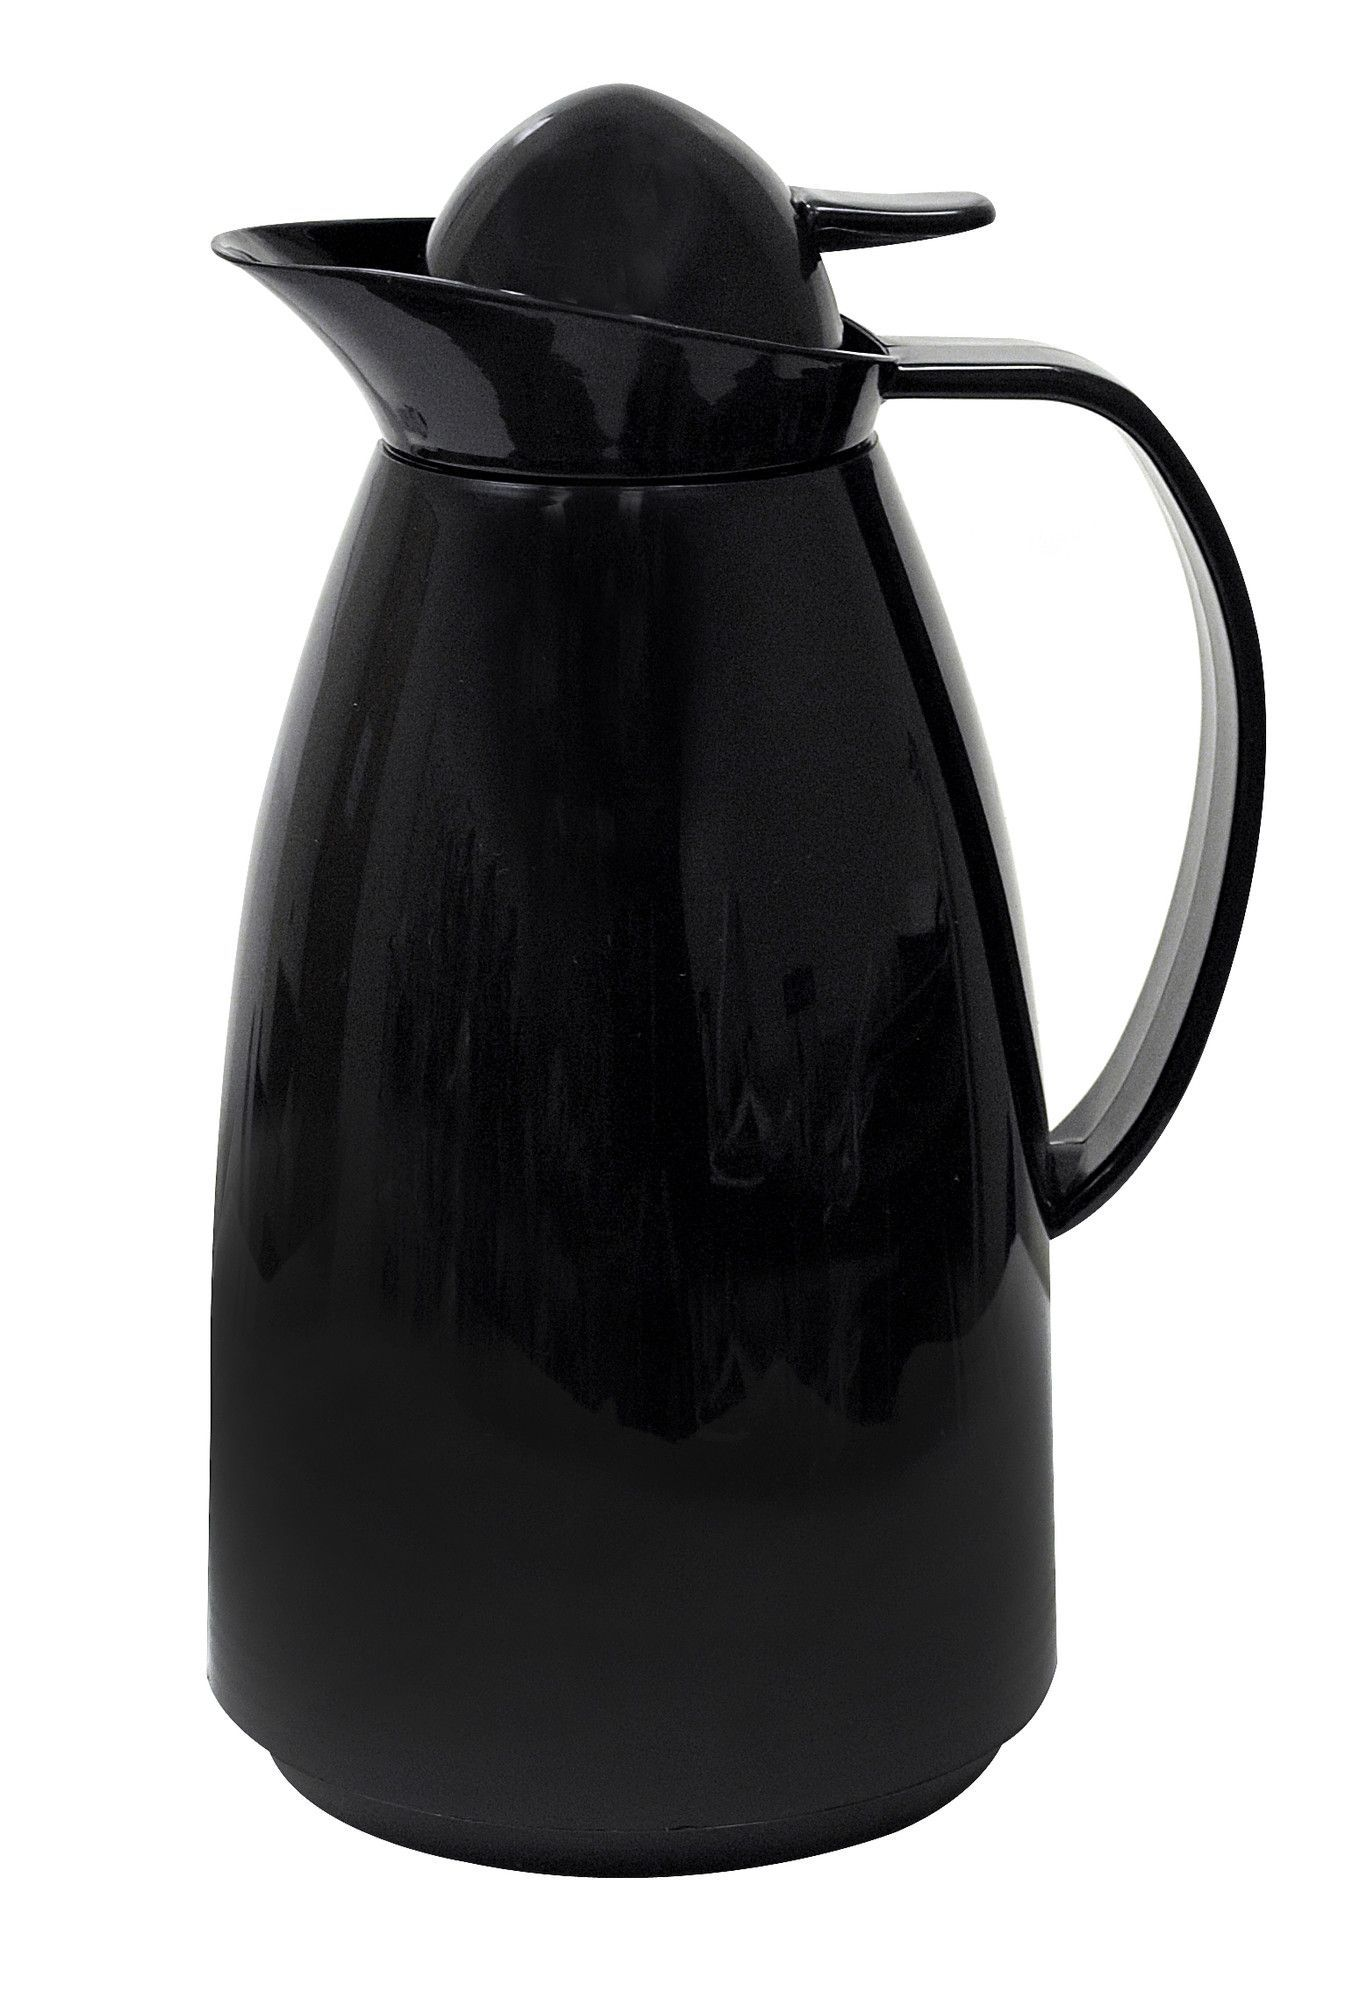 Thermal 4 Cup Carafe with Glass Lining Thermal carafes